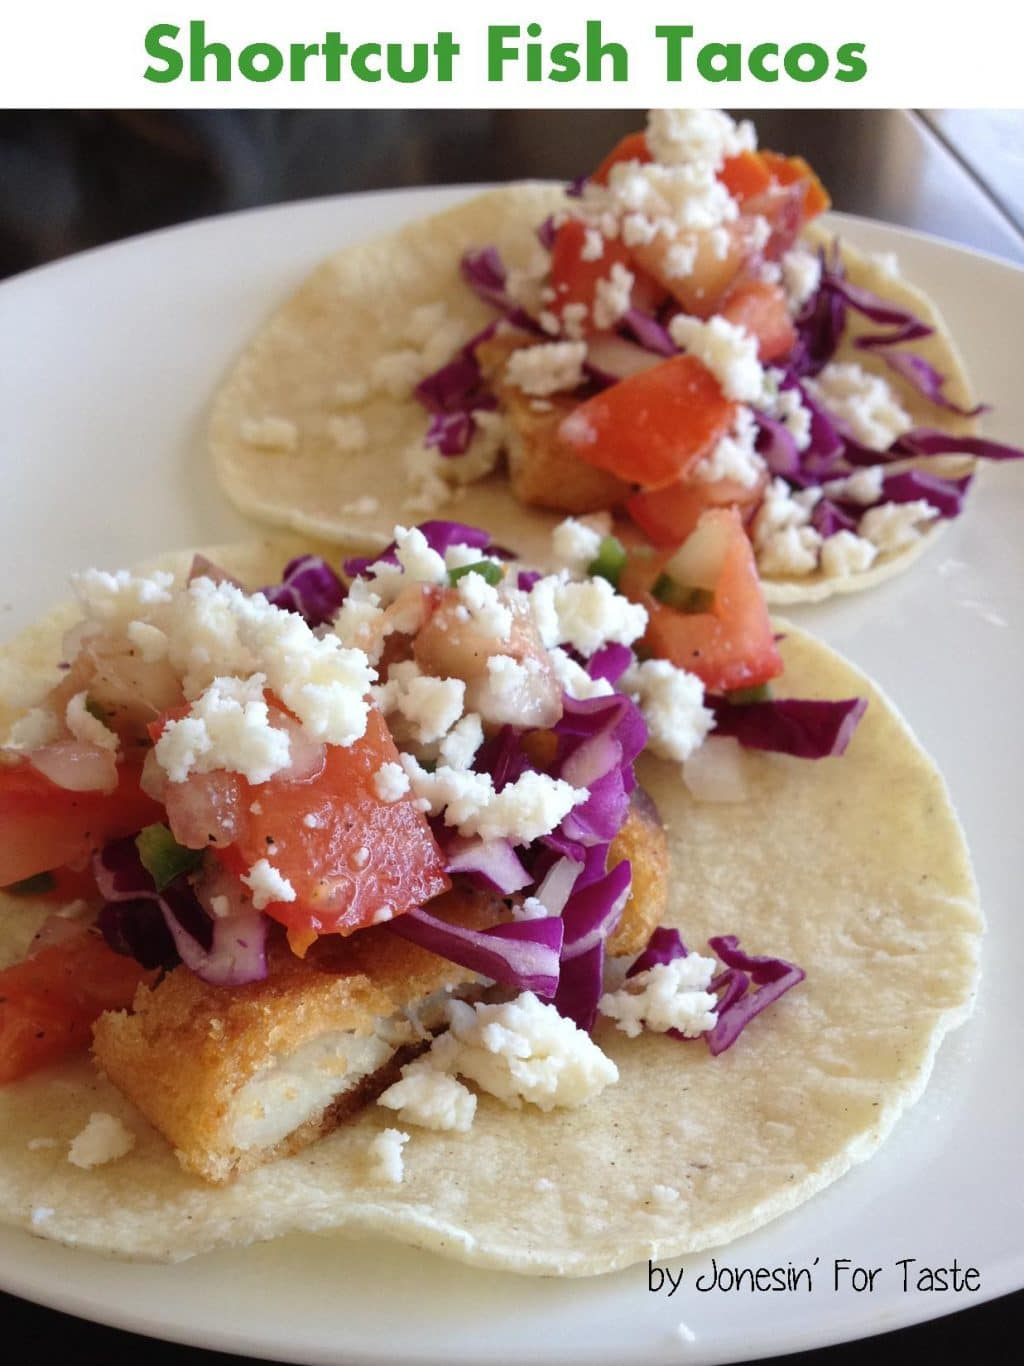 Shortcut Fish Tacos